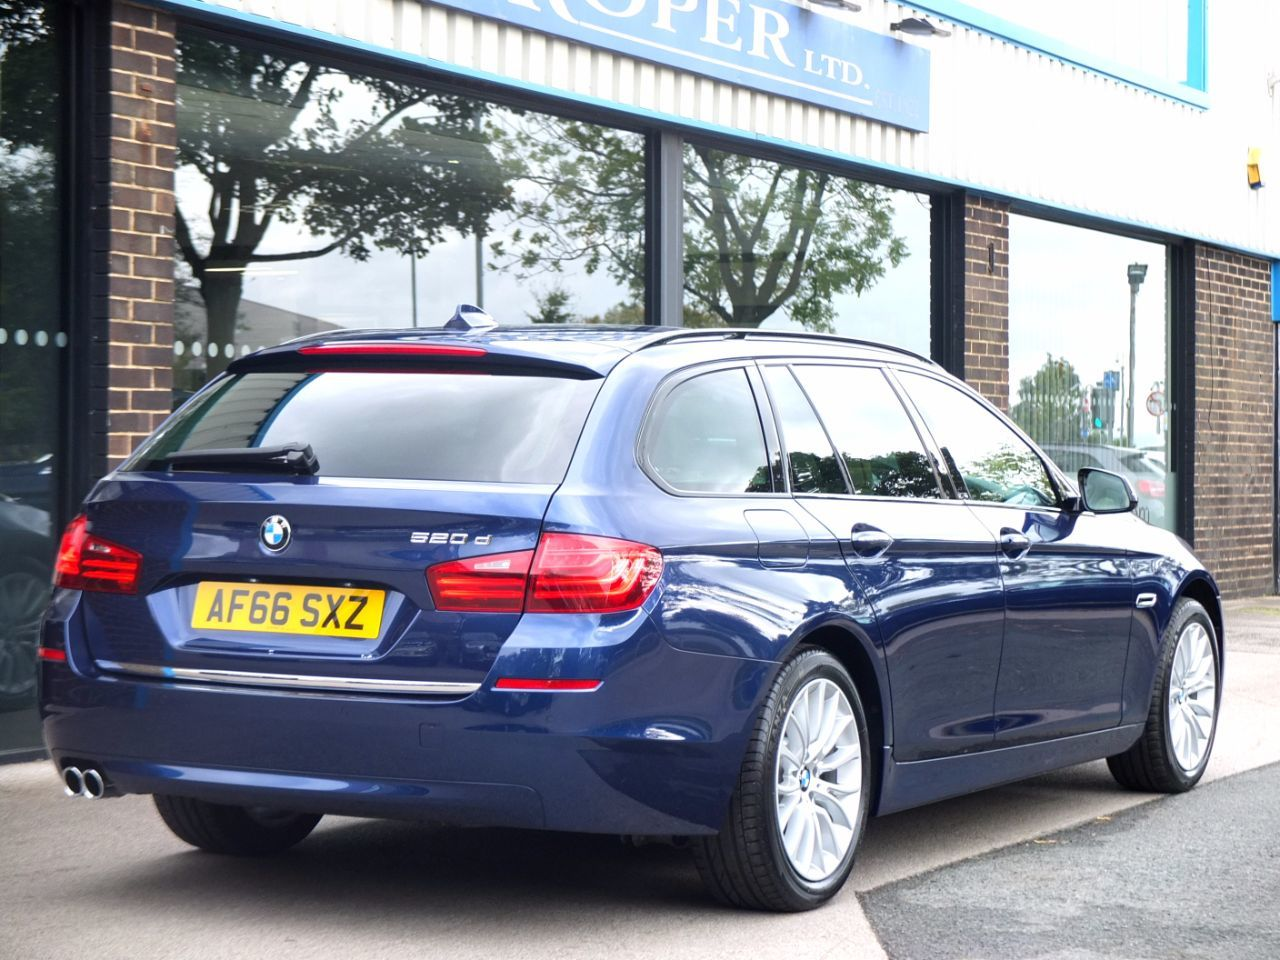 BMW 5 Series 2.0 520d Touring 190 ps Luxury Auto Estate Diesel Mediterranean Blue Metallic